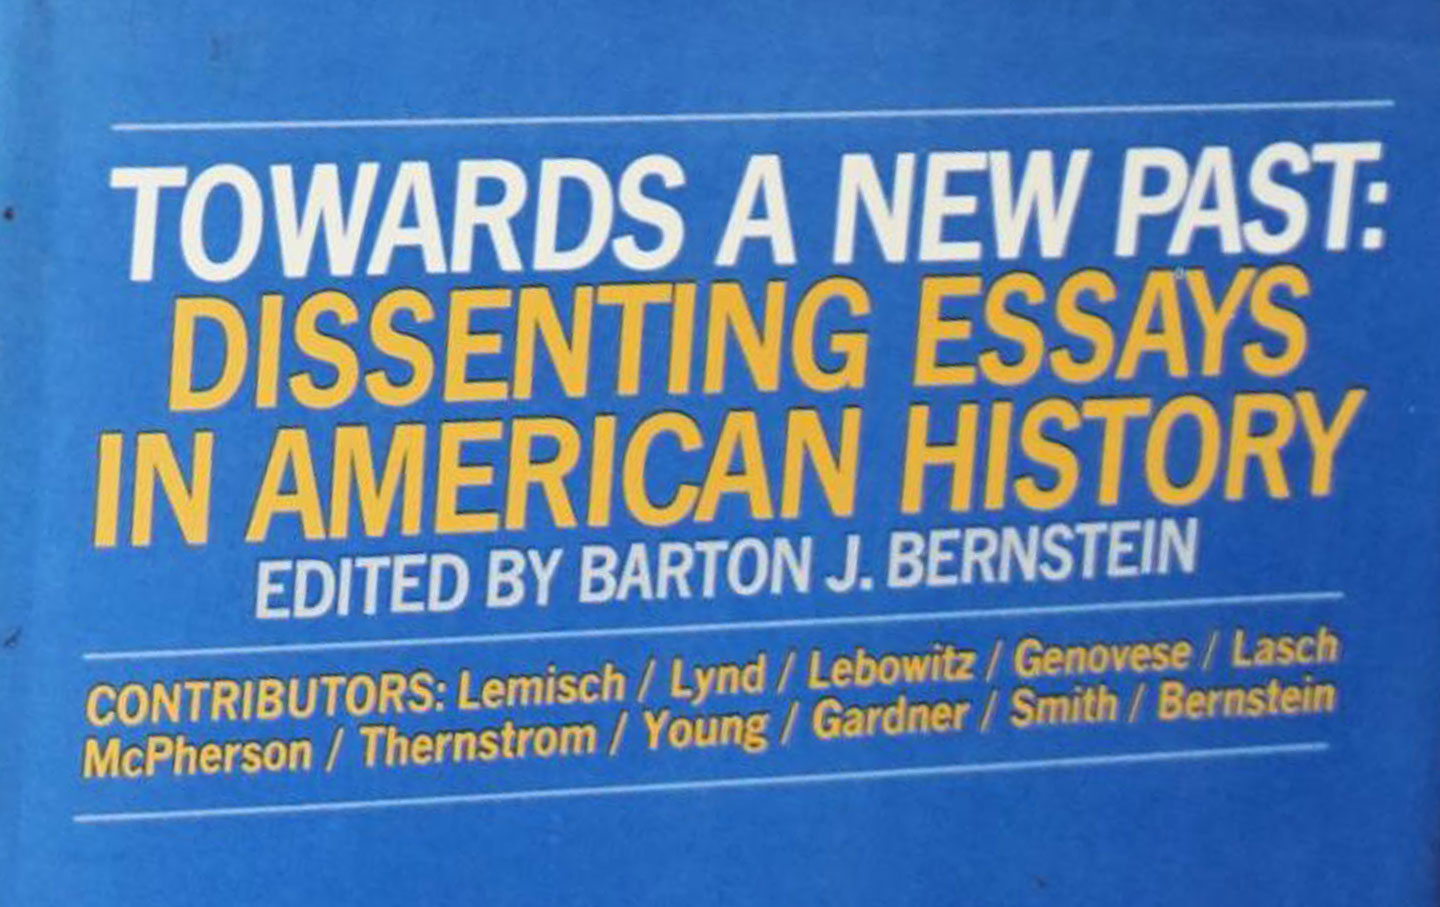 Towards a new past : dissenting essays in American history